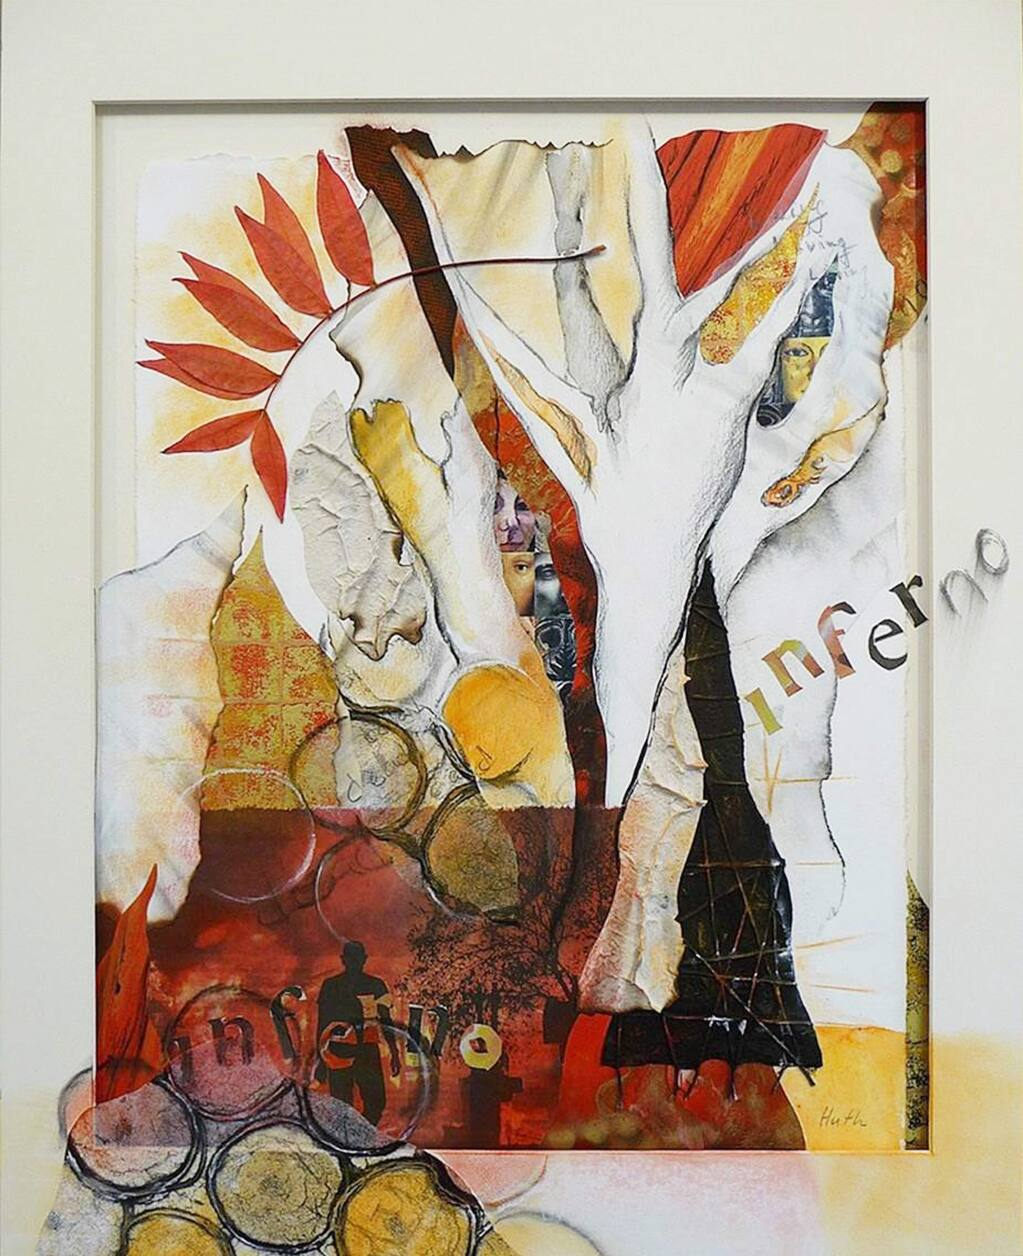 Collage by Gerald Huth, a Forestville artist. Visual Arts: Mixed, Painting, Sculpture;